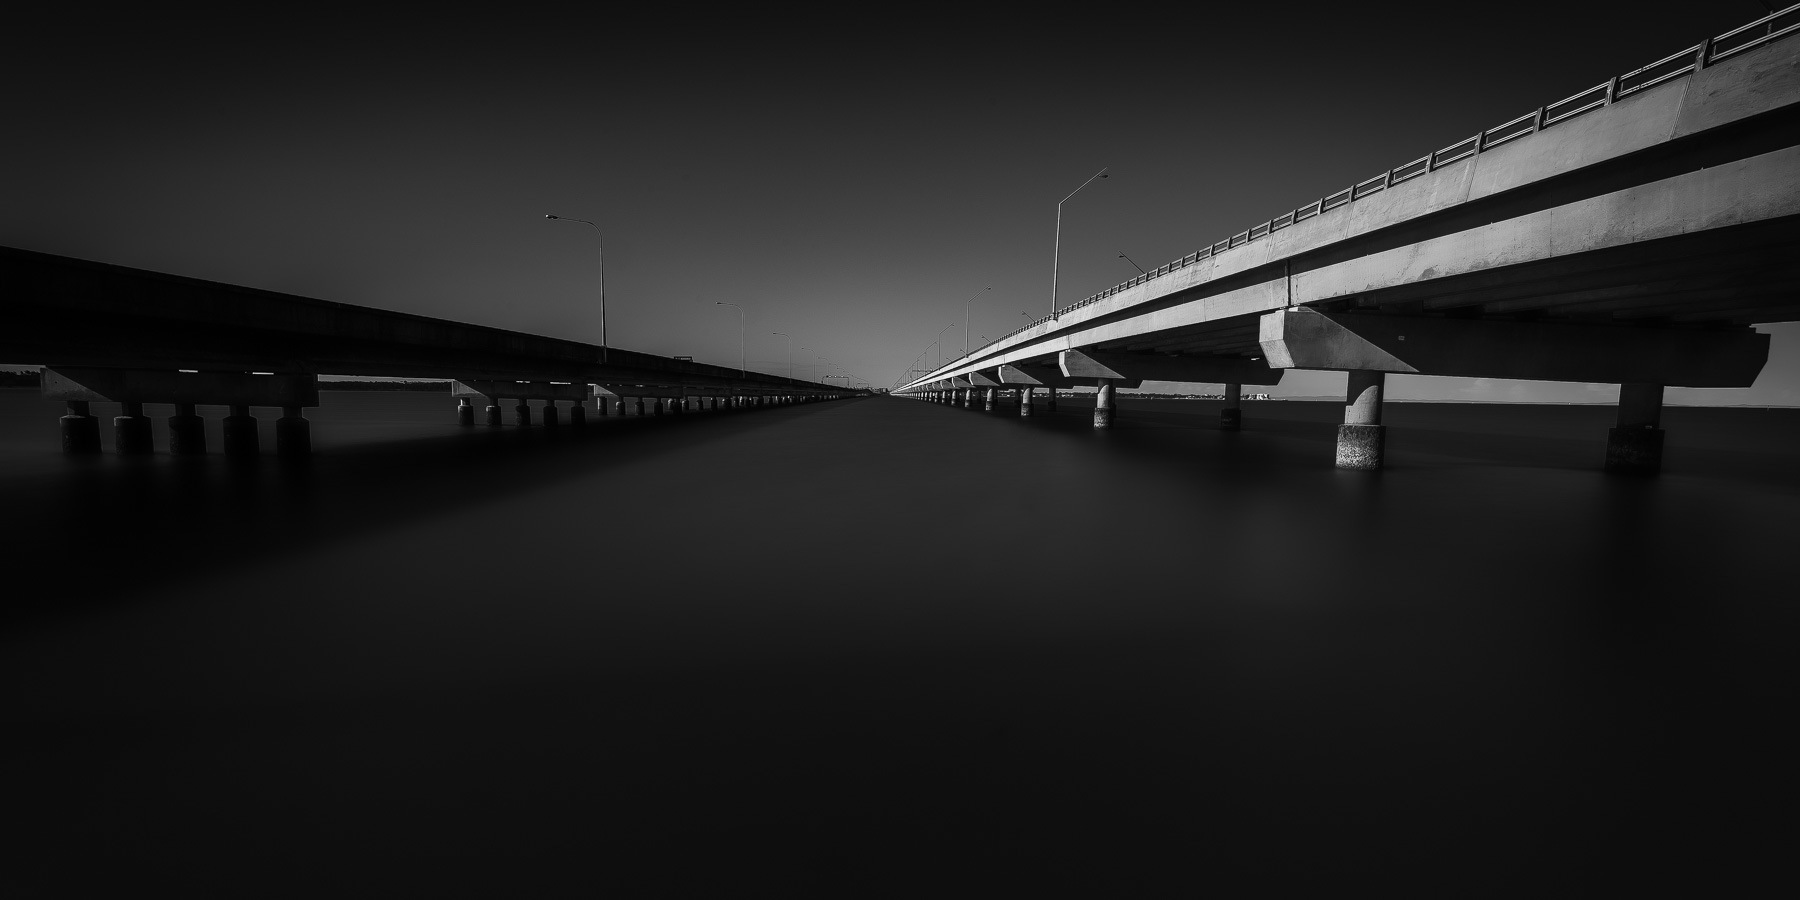 Brisbane BW Series #1 by Dave Newcombe